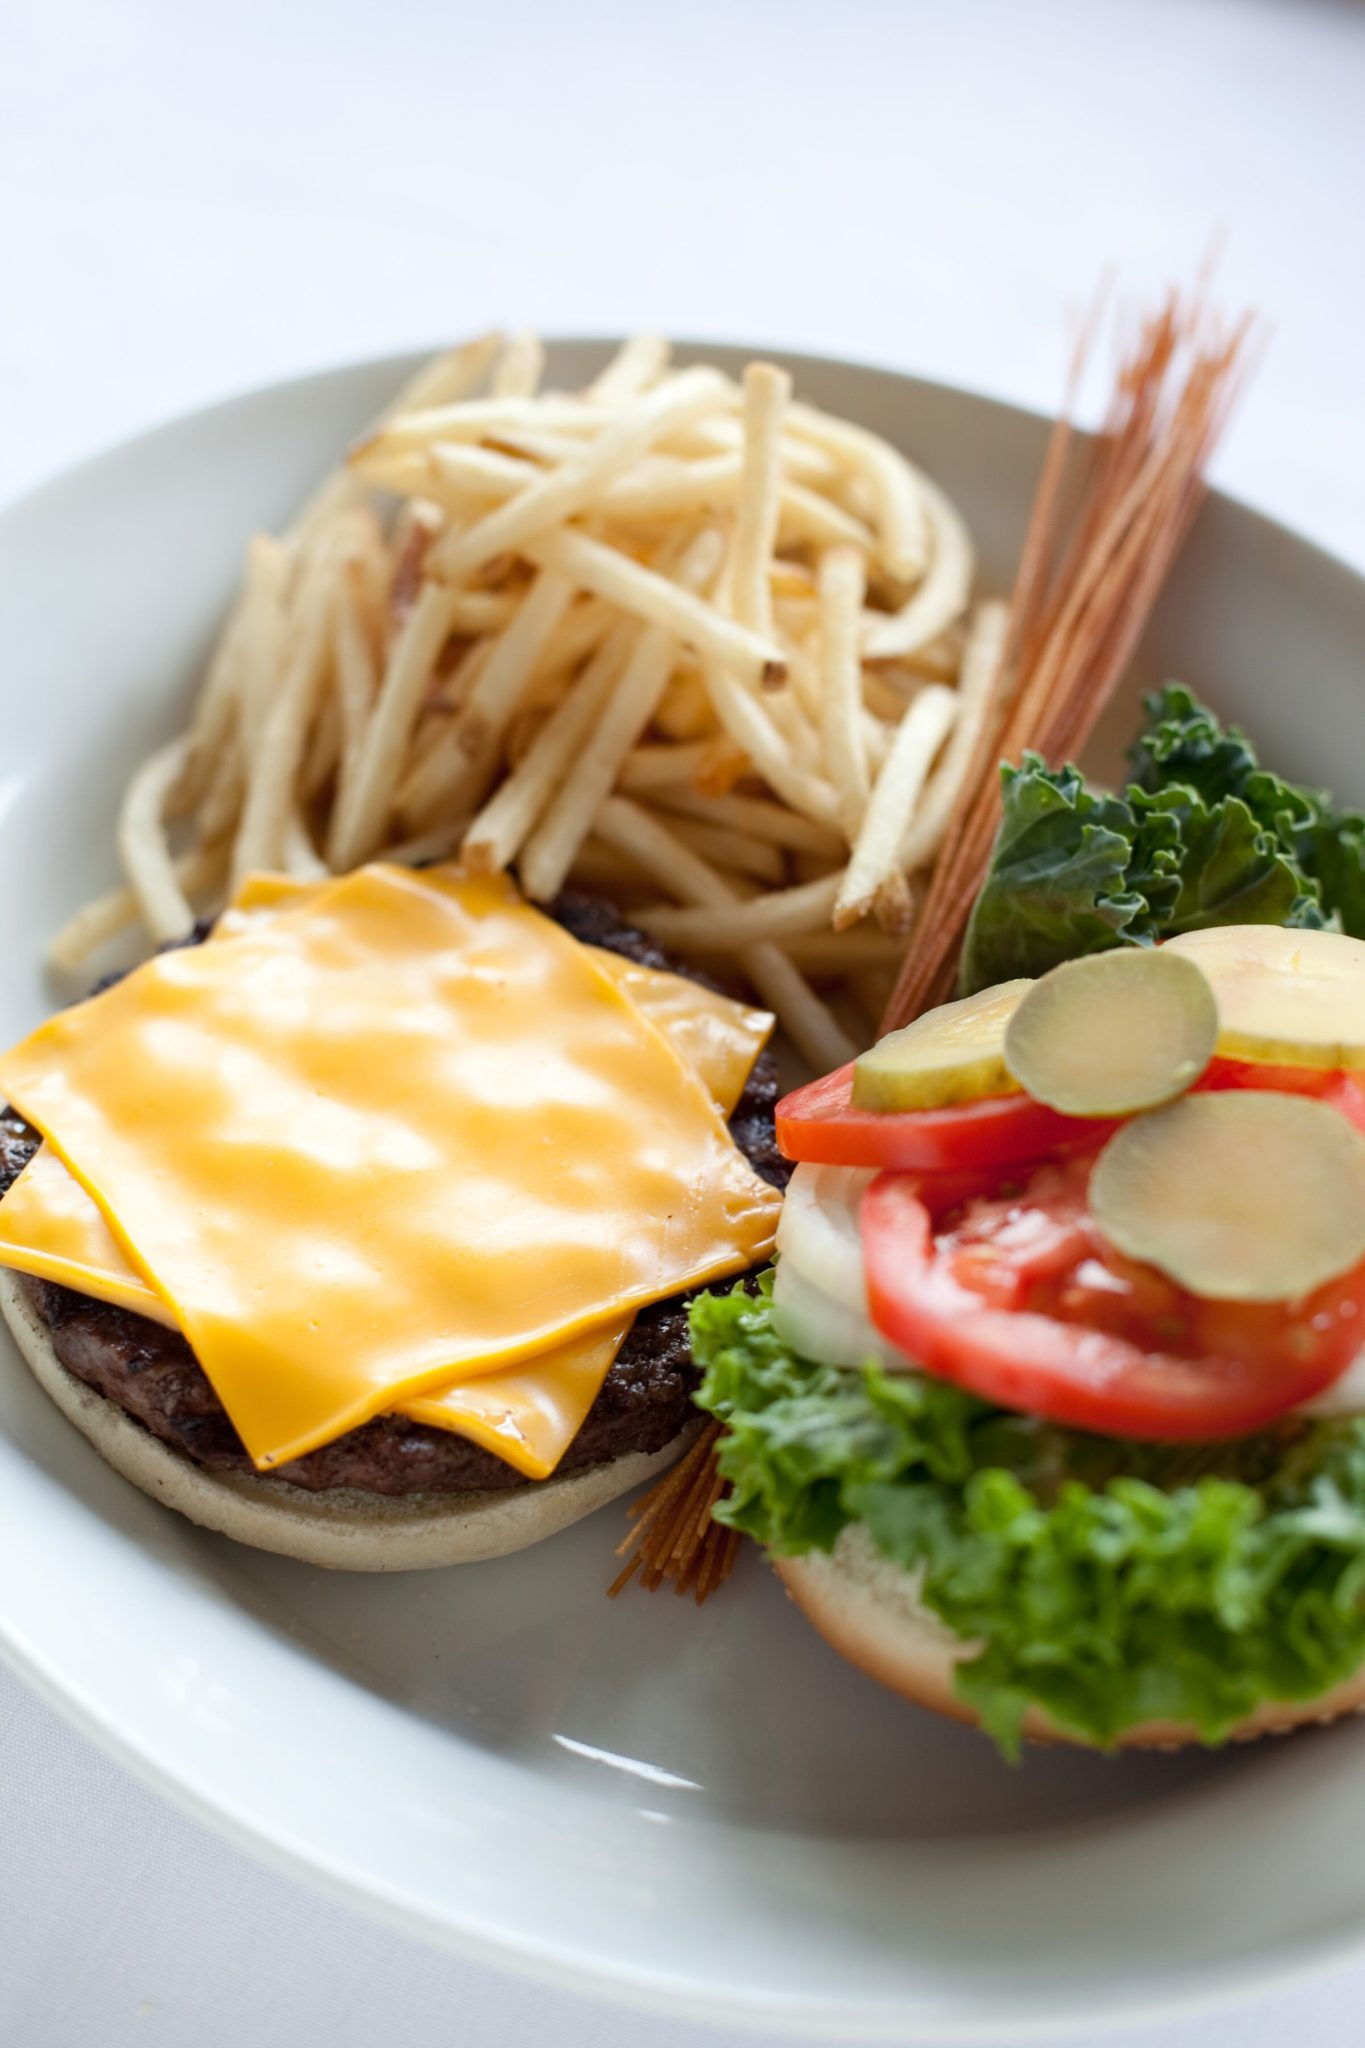 Eagle Burger and French Fries